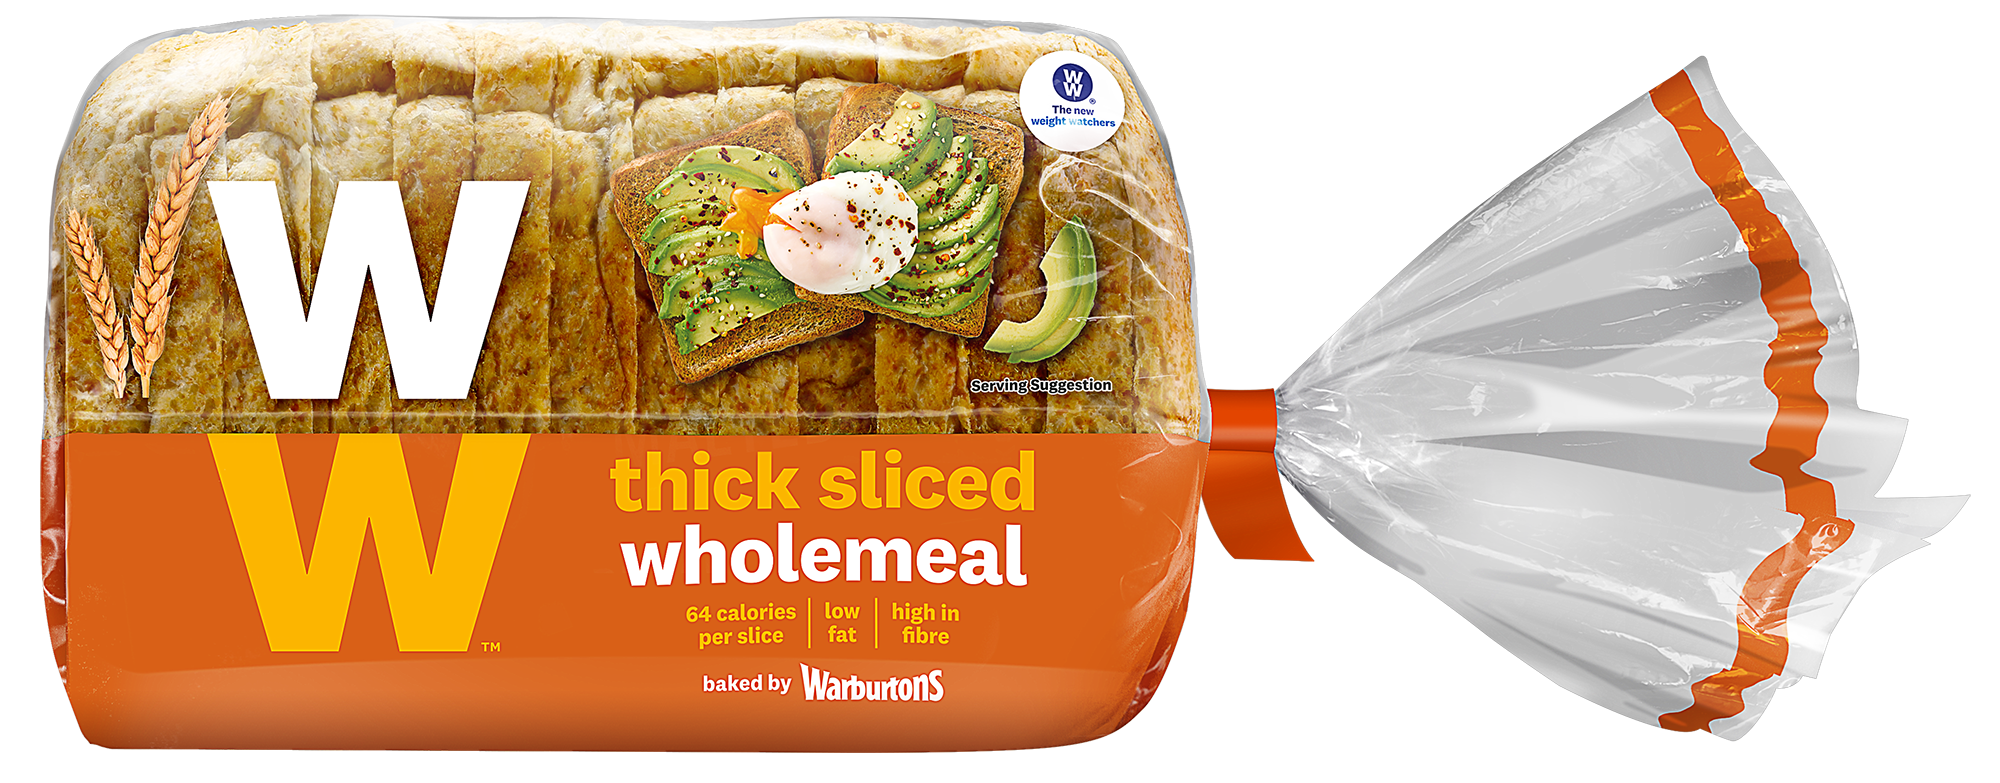 WW® Thick Wholemeal by Warburtons